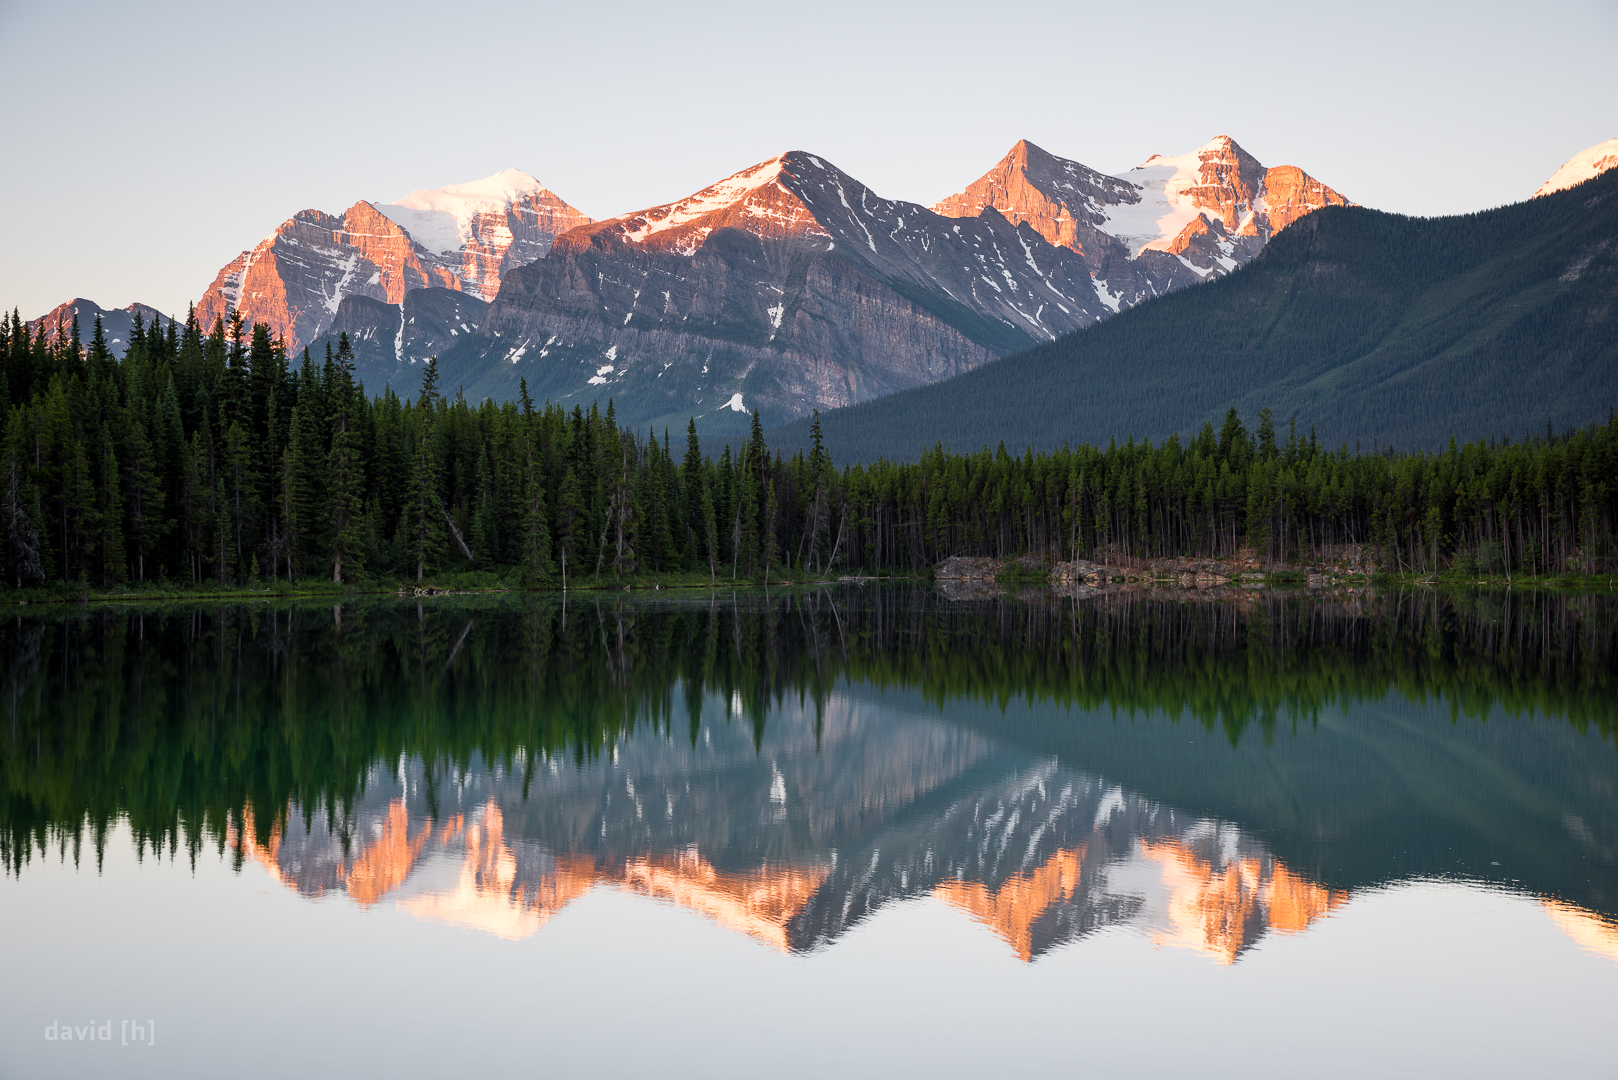 Sunrise reflections in Herbert Lake, allegedly the warmest lake in the entire Canadian Rockies, even sporting a diving board!